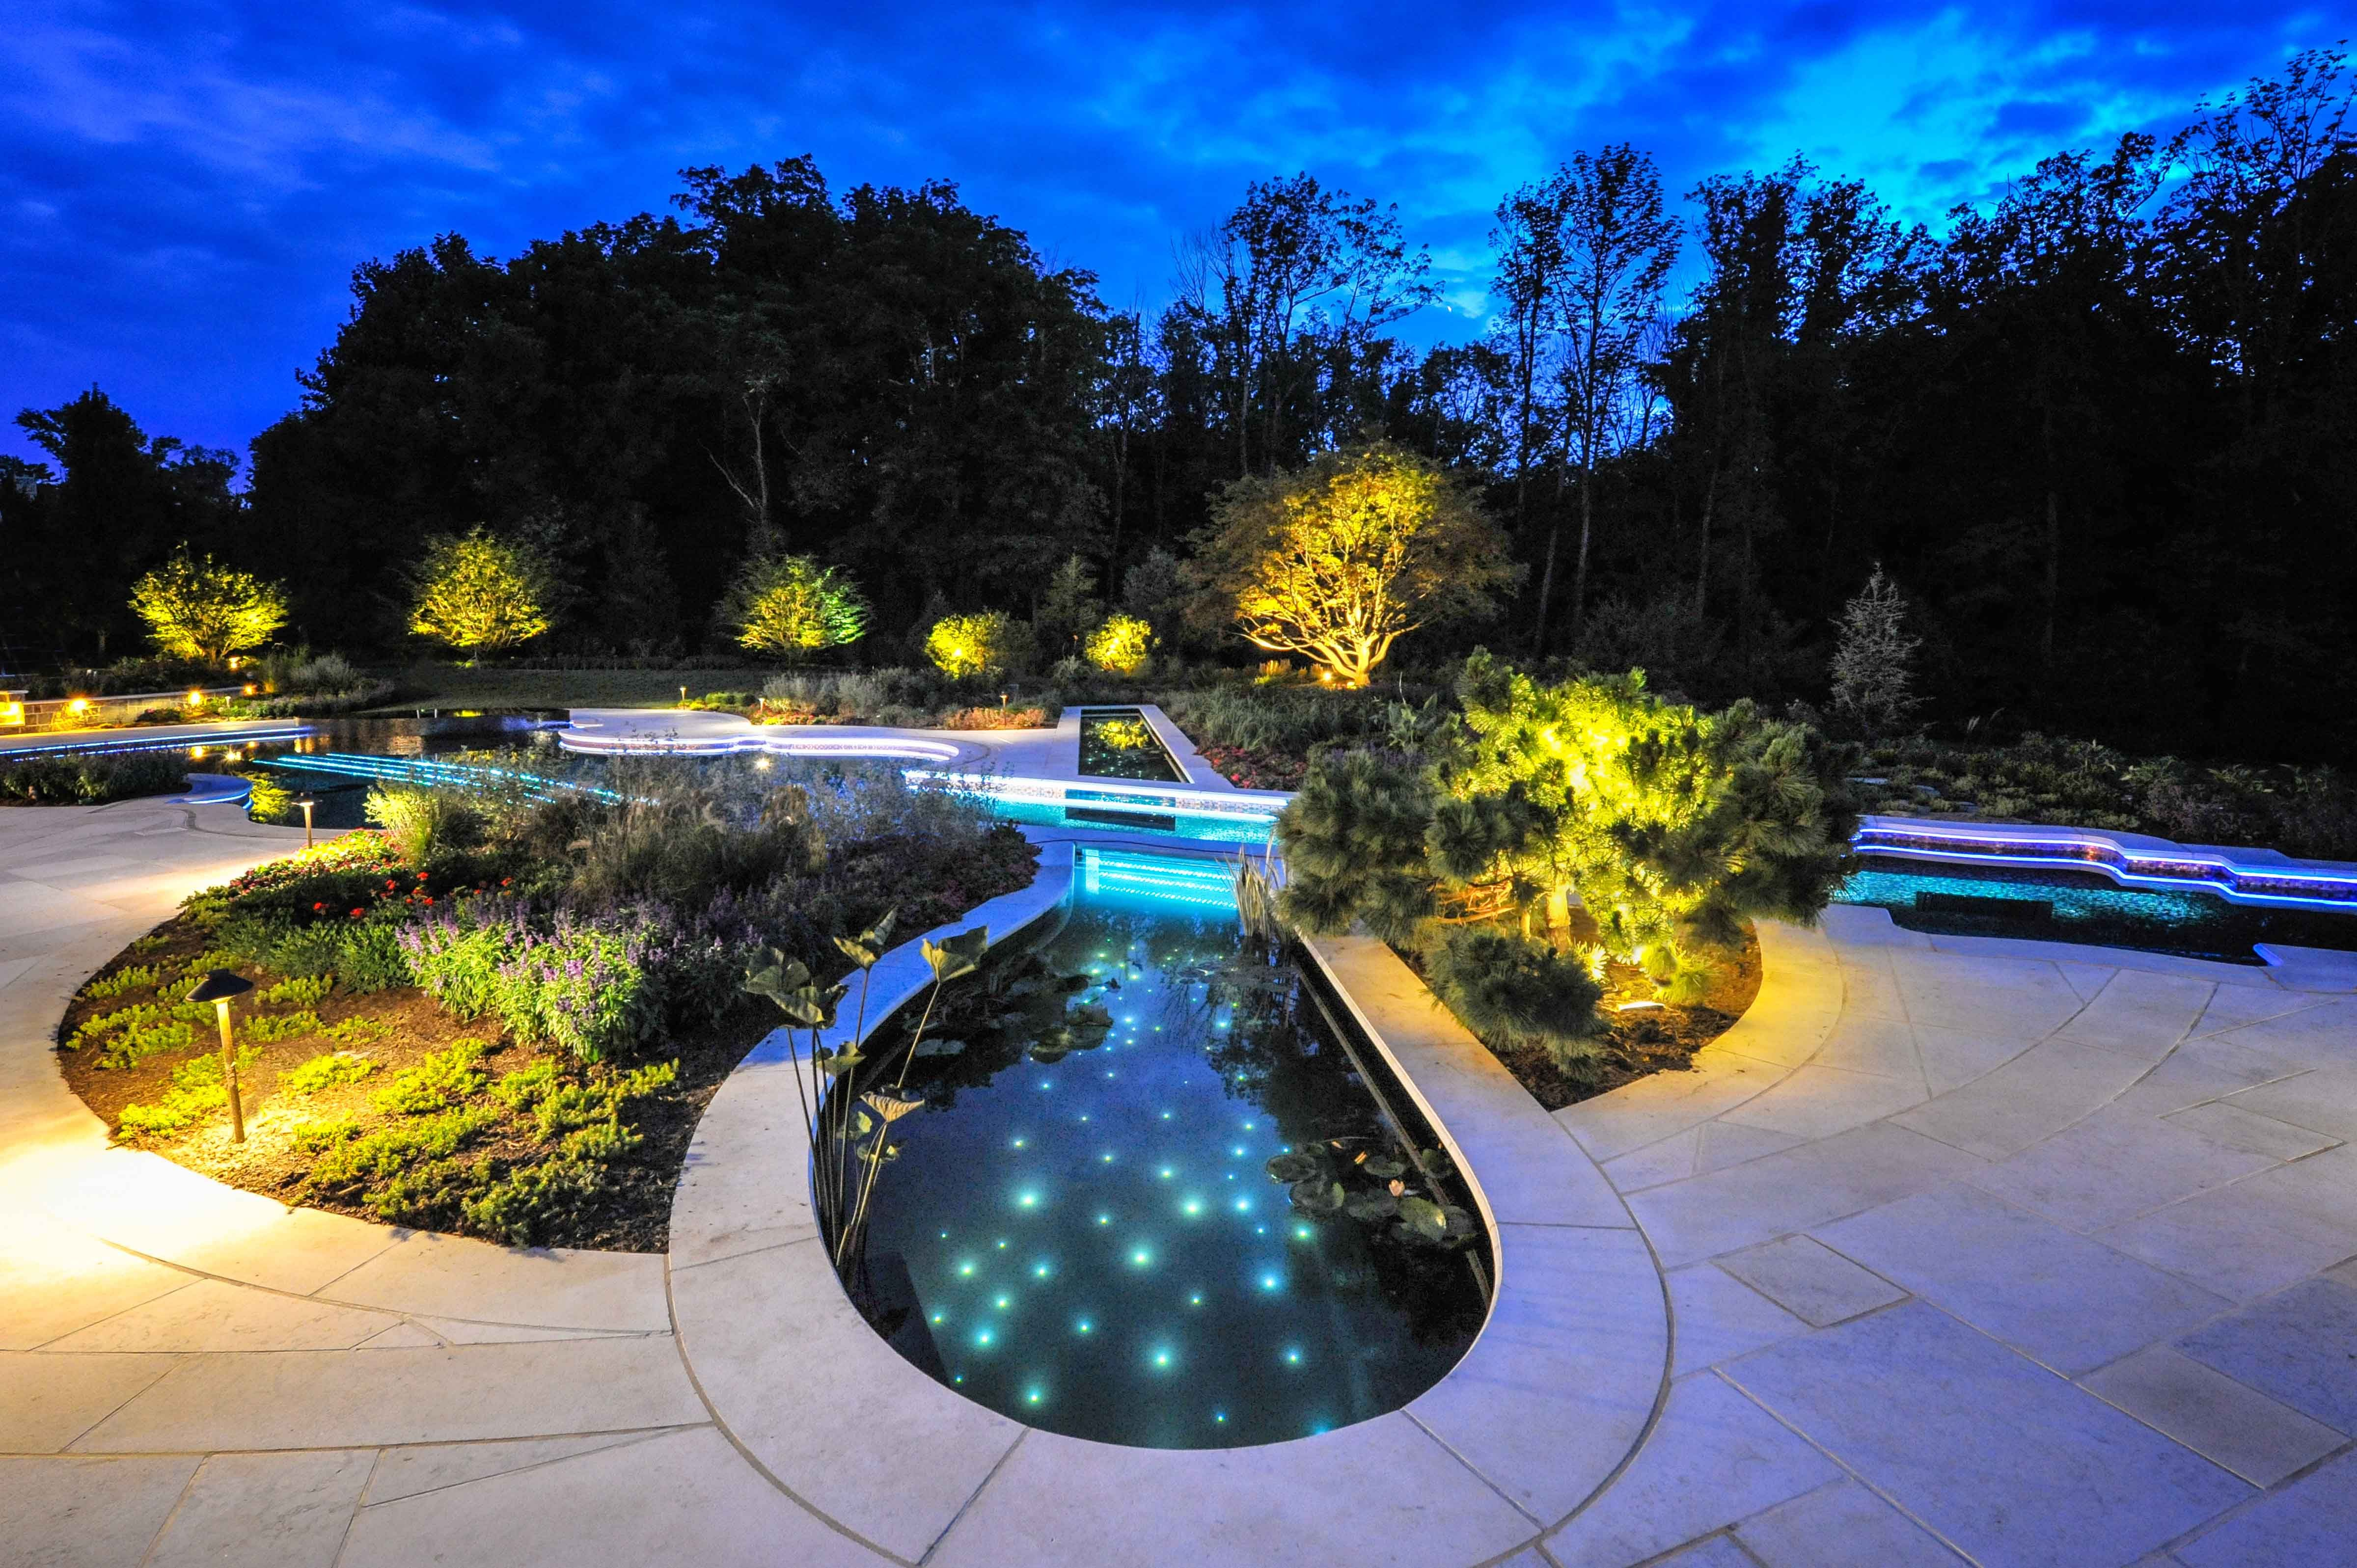 led light design - outdoor | Architettura e L.E.D. | Pinterest ... on pool fireplaces ideas, pool landscape photography, pool landscaping ideas, pool planting ideas, pool security ideas, pool hardscaping ideas, pool deck lighting, pool area lighting, pool landscape accessories, pool construction ideas, pool hedges ideas, pool handrail ideas, pool flooring ideas, pool design ideas, pool maintenance ideas,